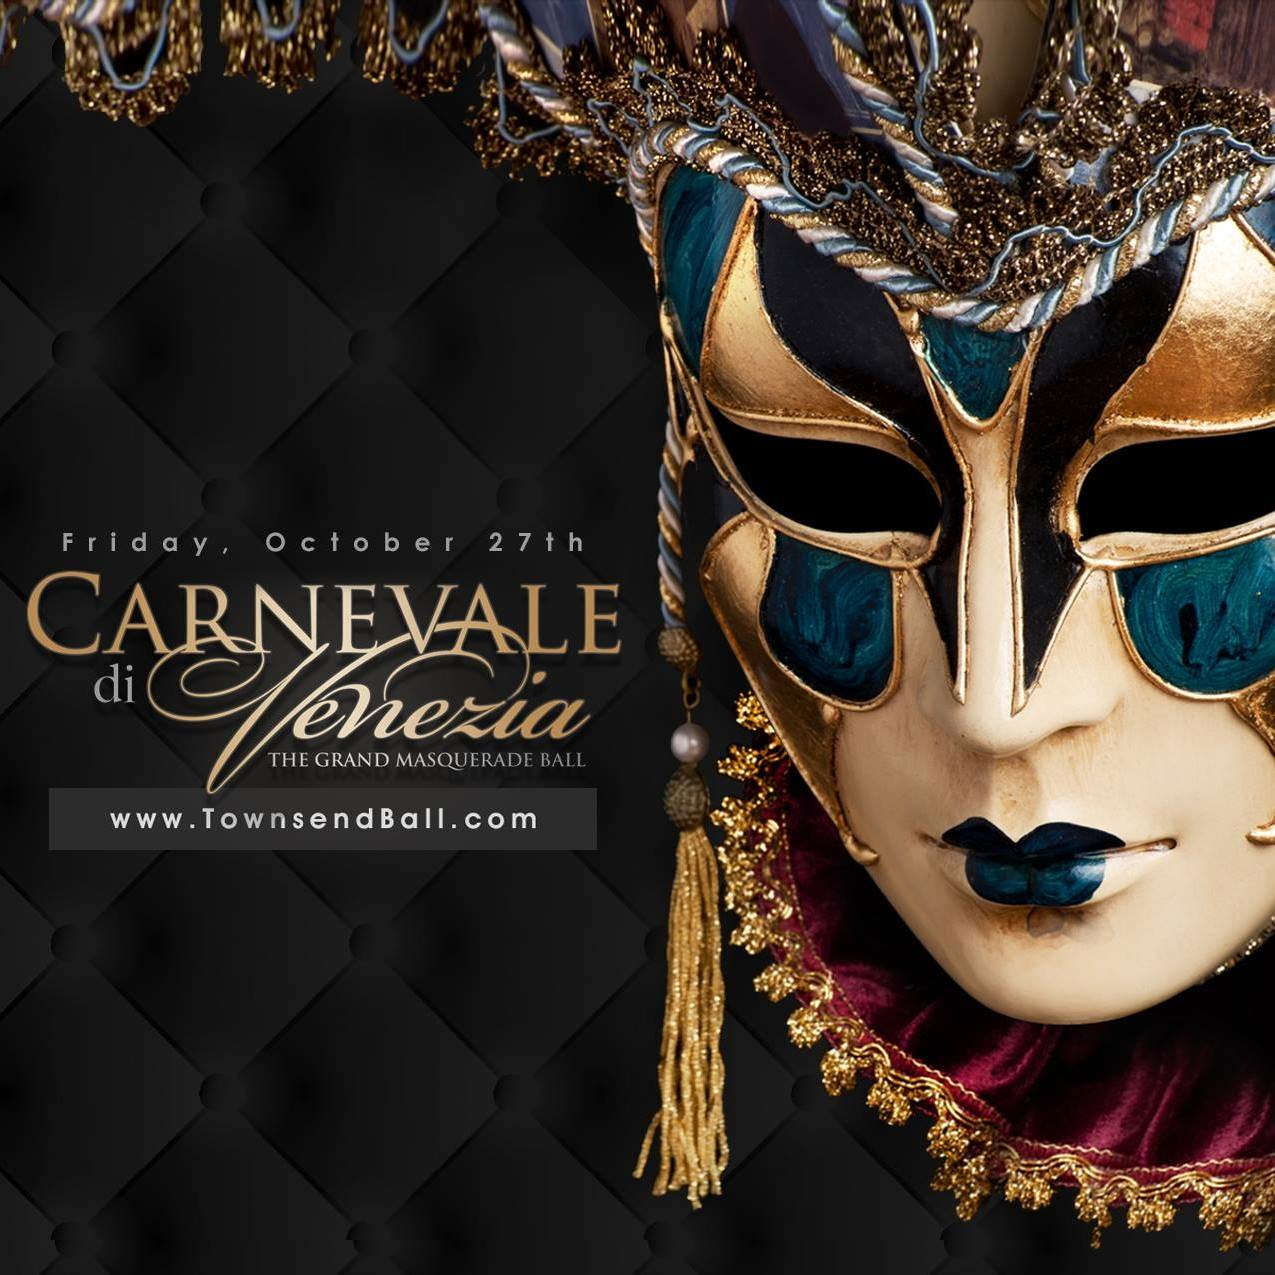 Carnevale di Venezia | The Grand Masquerade Ball 2017